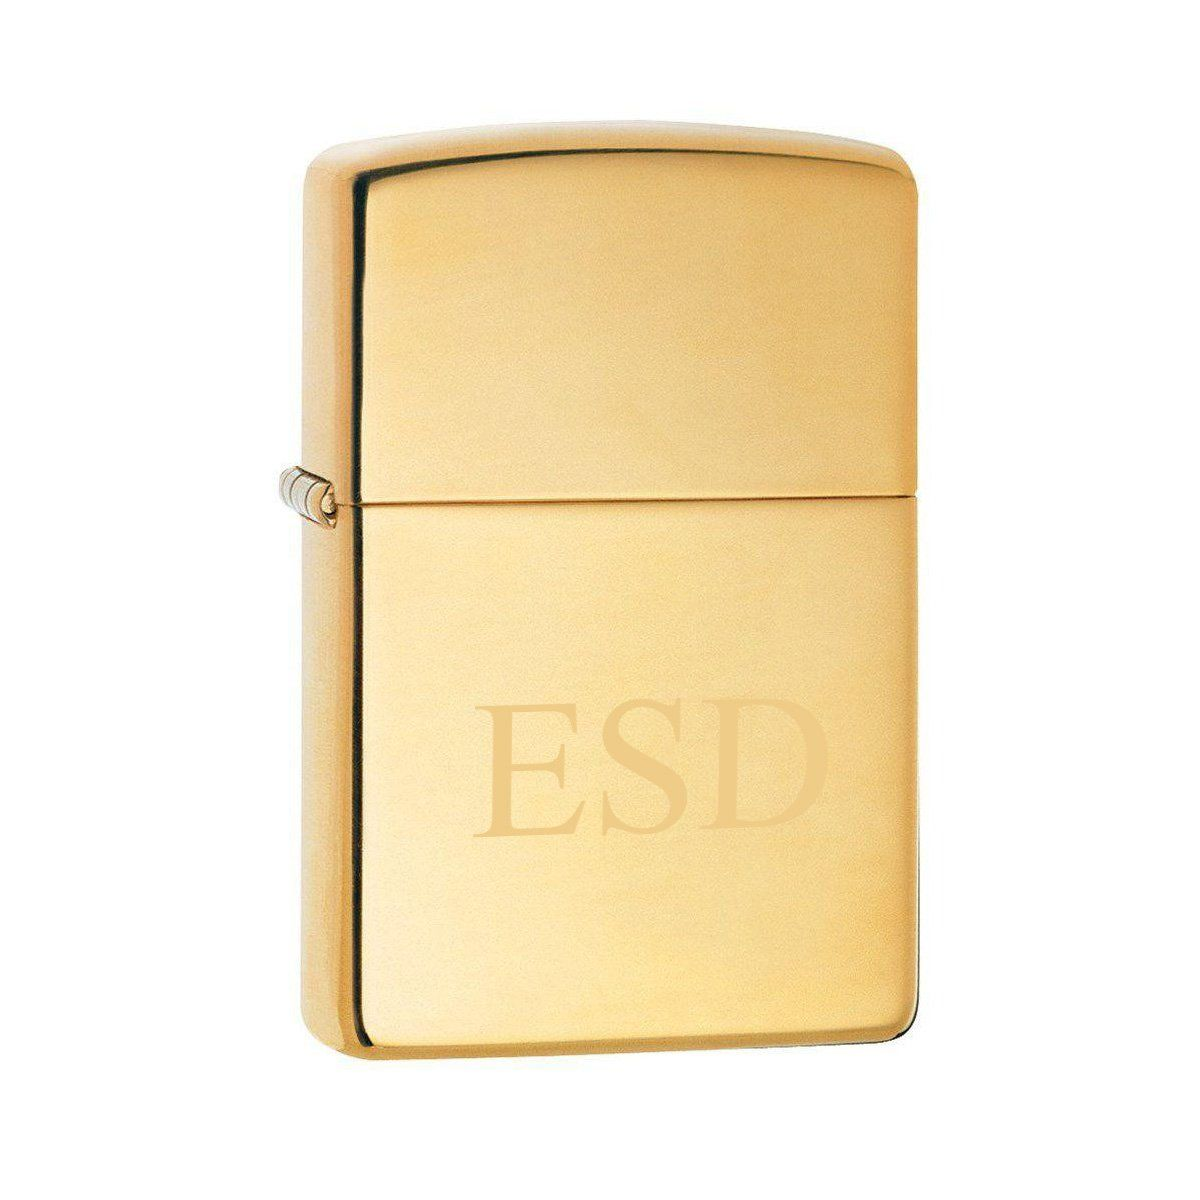 Personalized-High-Polish-Brass-Zippo-Lighter